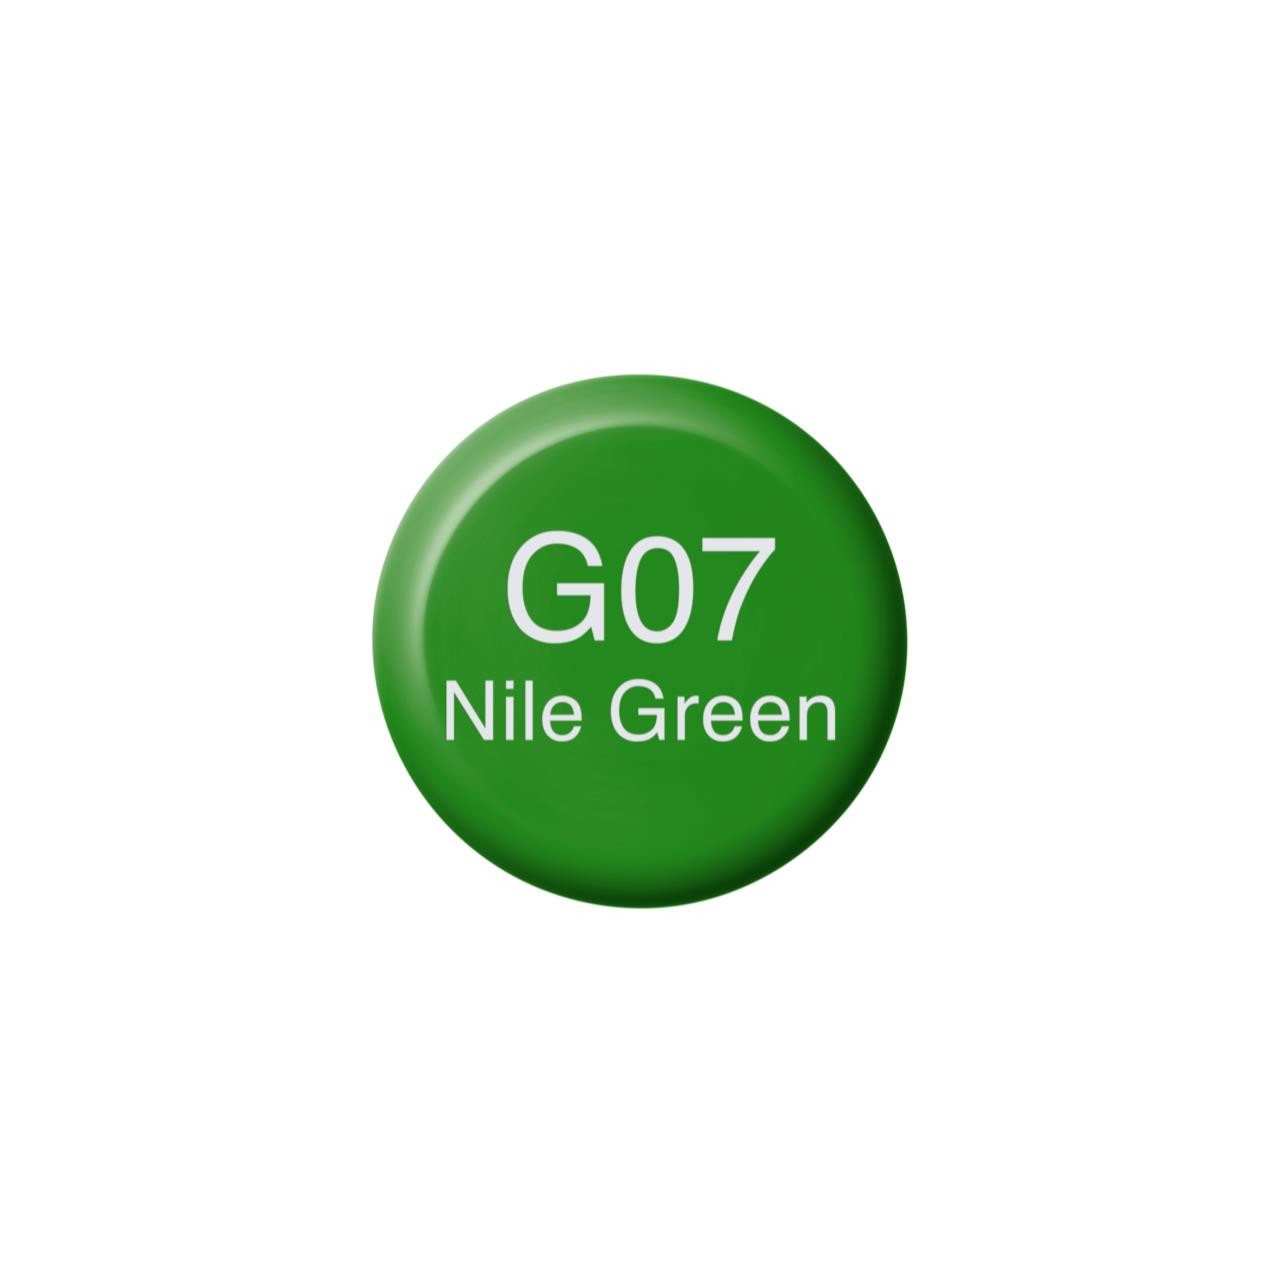 G07 Nile Green, Copic Ink - 4511338057179